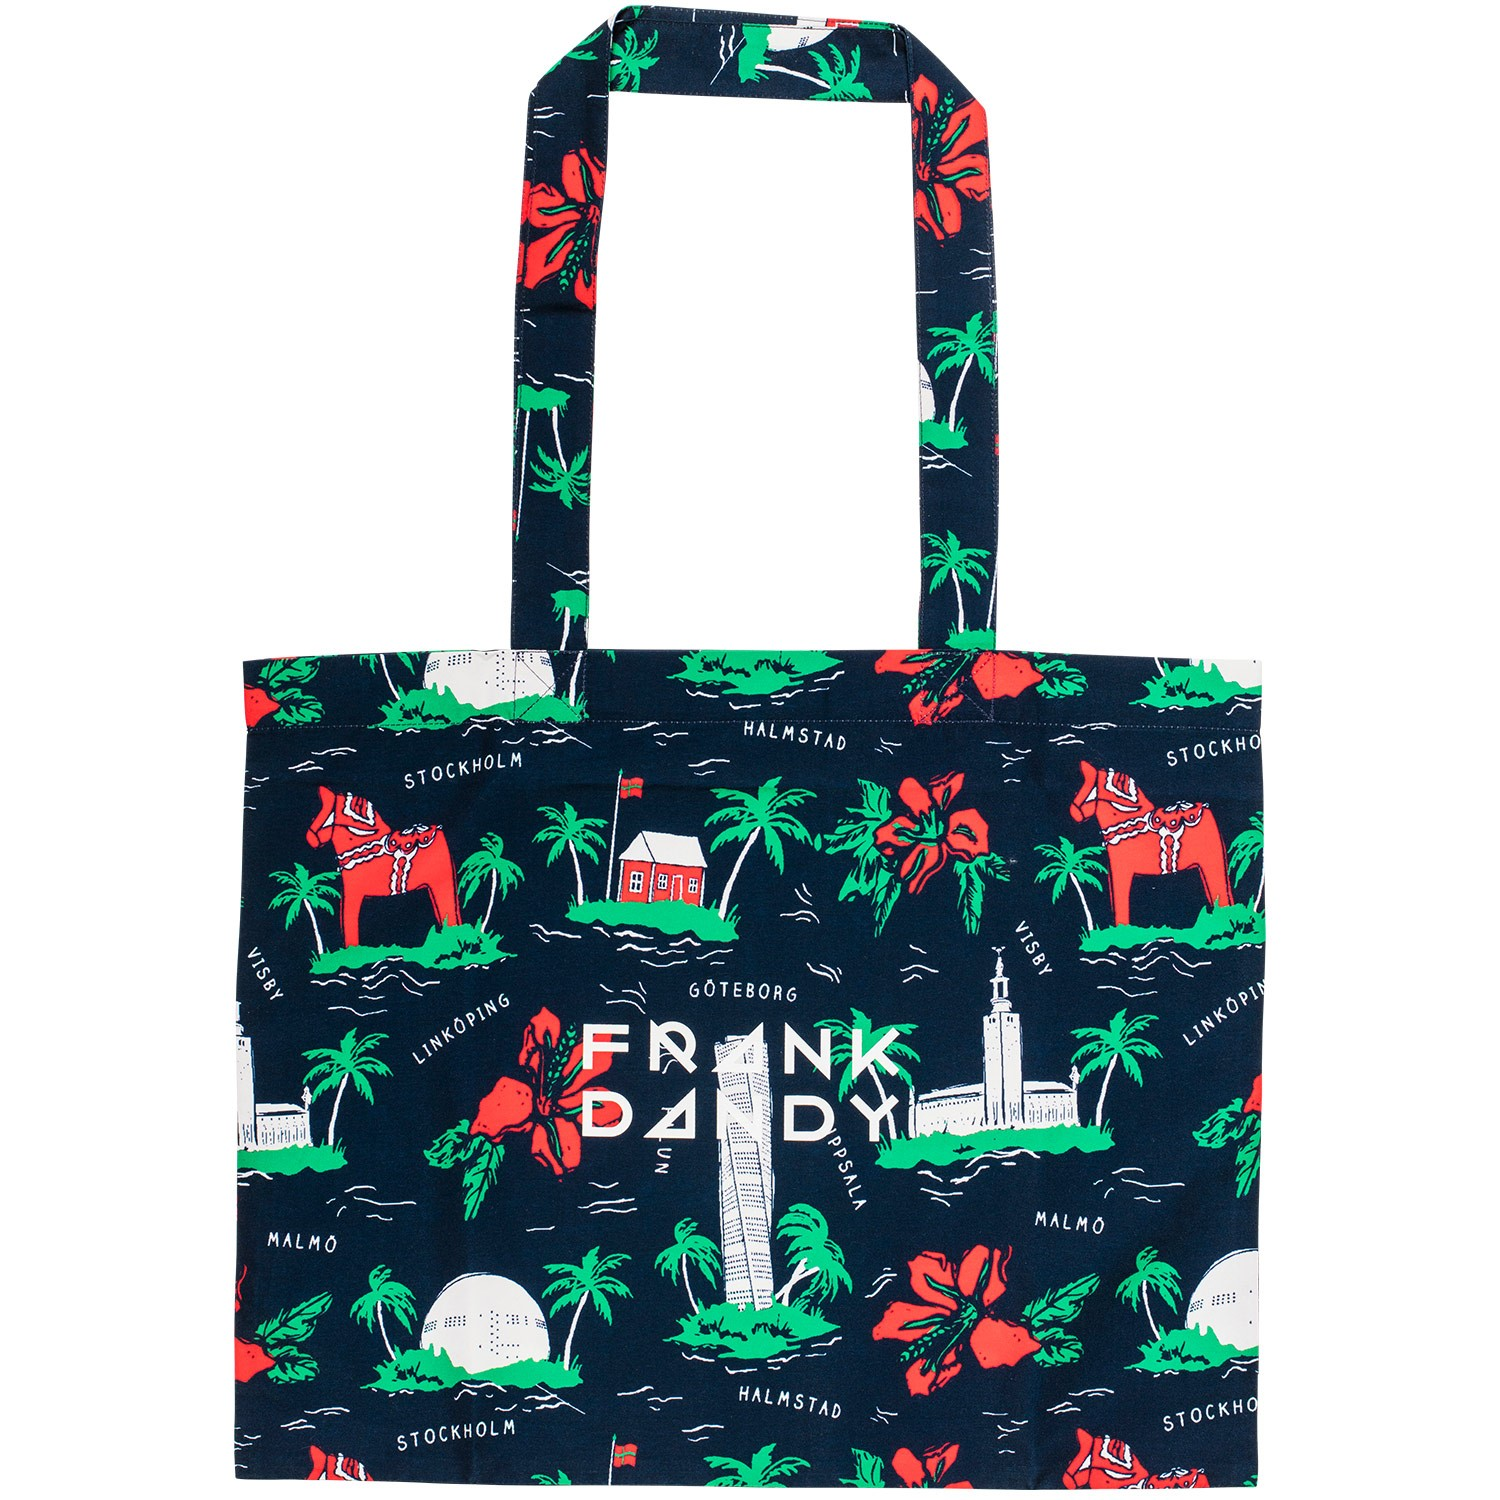 Frank Dandy Swewaii Beach Tote Bag